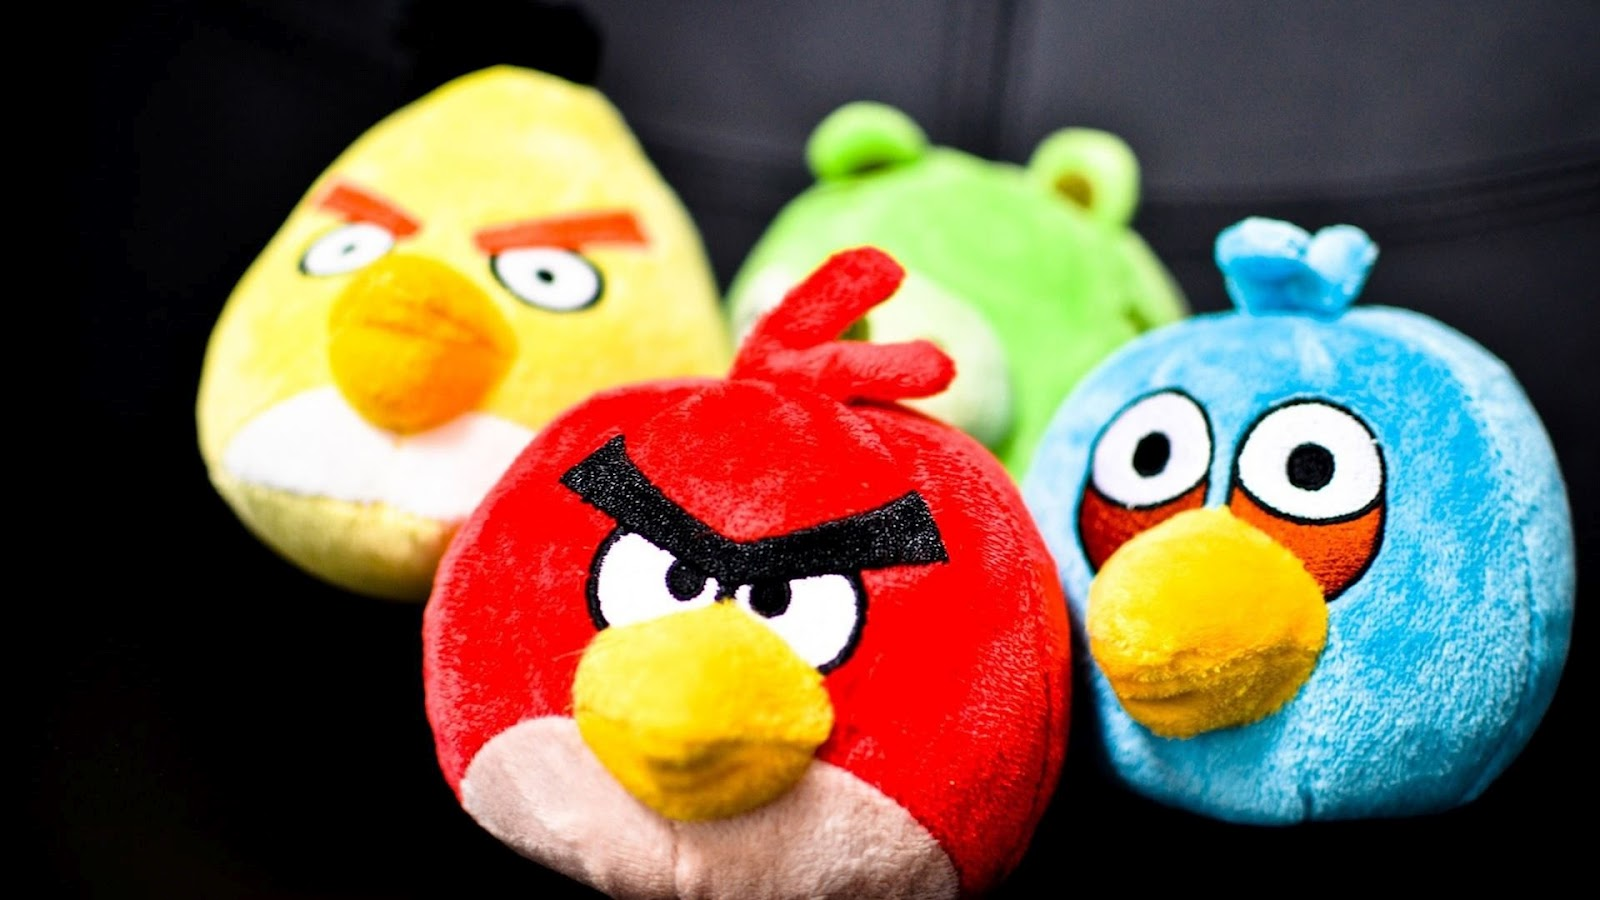 Wallpaper Hd 1080p Angry Birds Angry Birds Free Download For Wallpaper